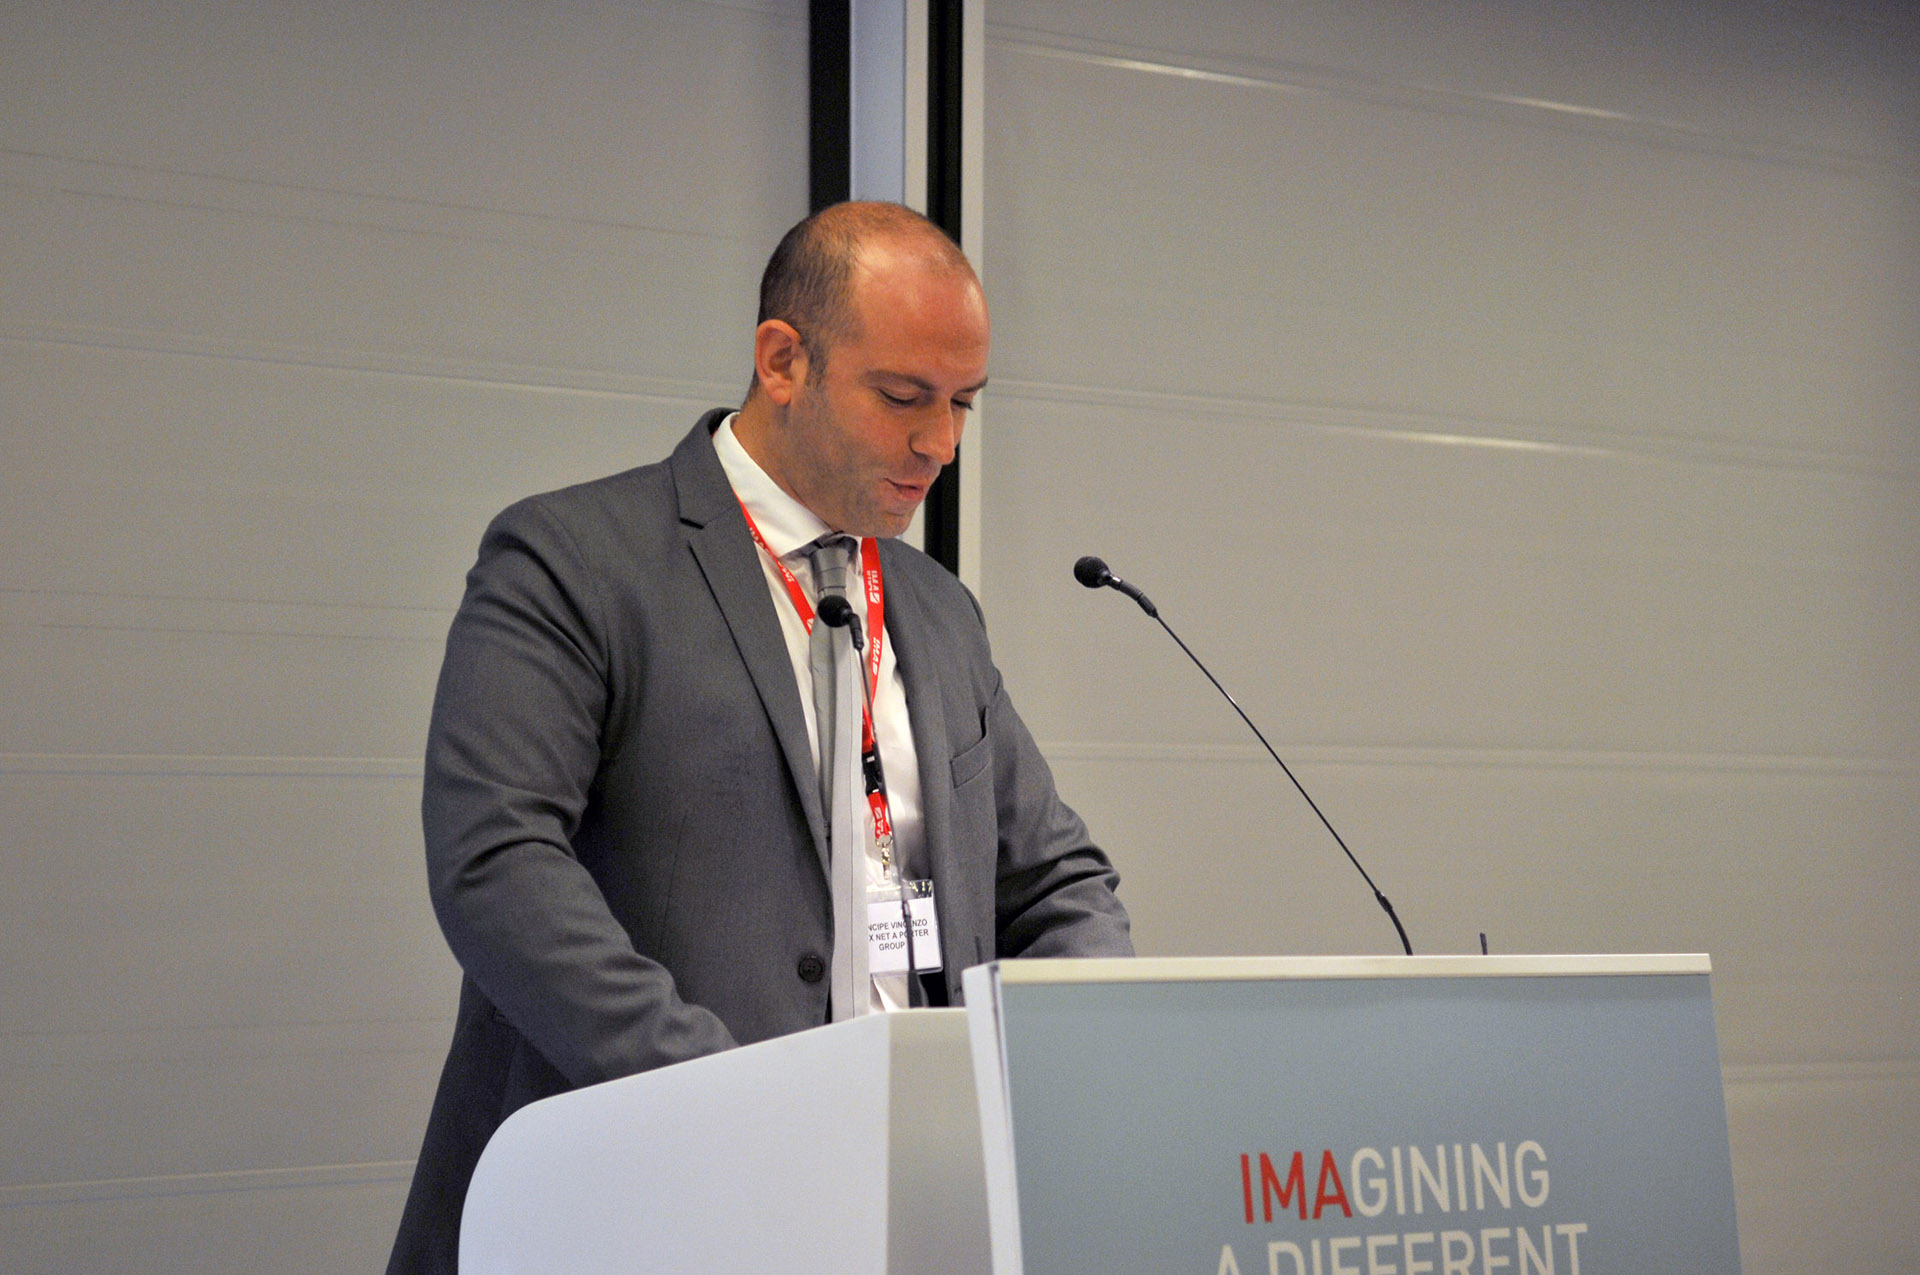 Vincenzo Prencipe, HR BP Operations & Industrial Relations, YOOX